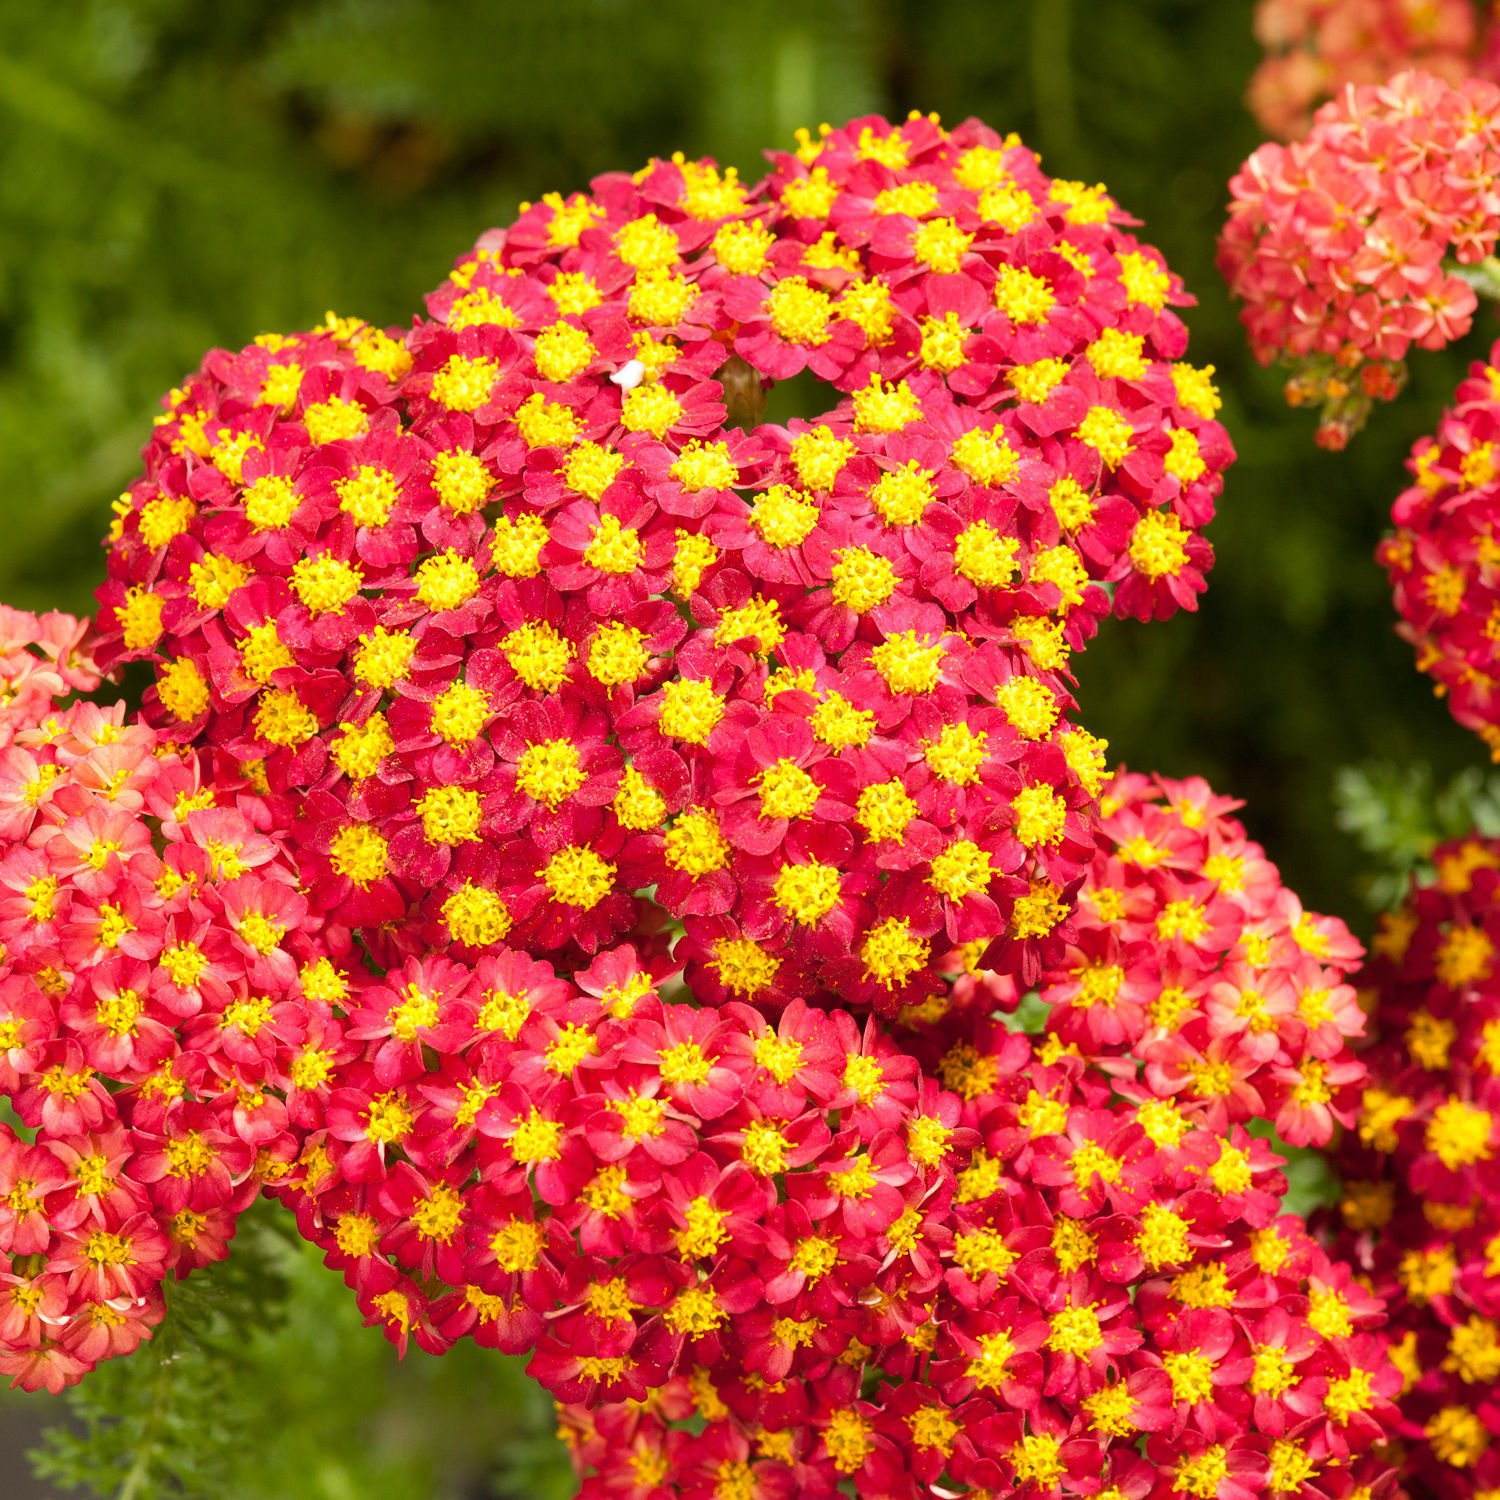 Red yarrow Achillea millefolium 1000 seeds *Herb* Medical *SHIPPING FROM US* CombSH A82